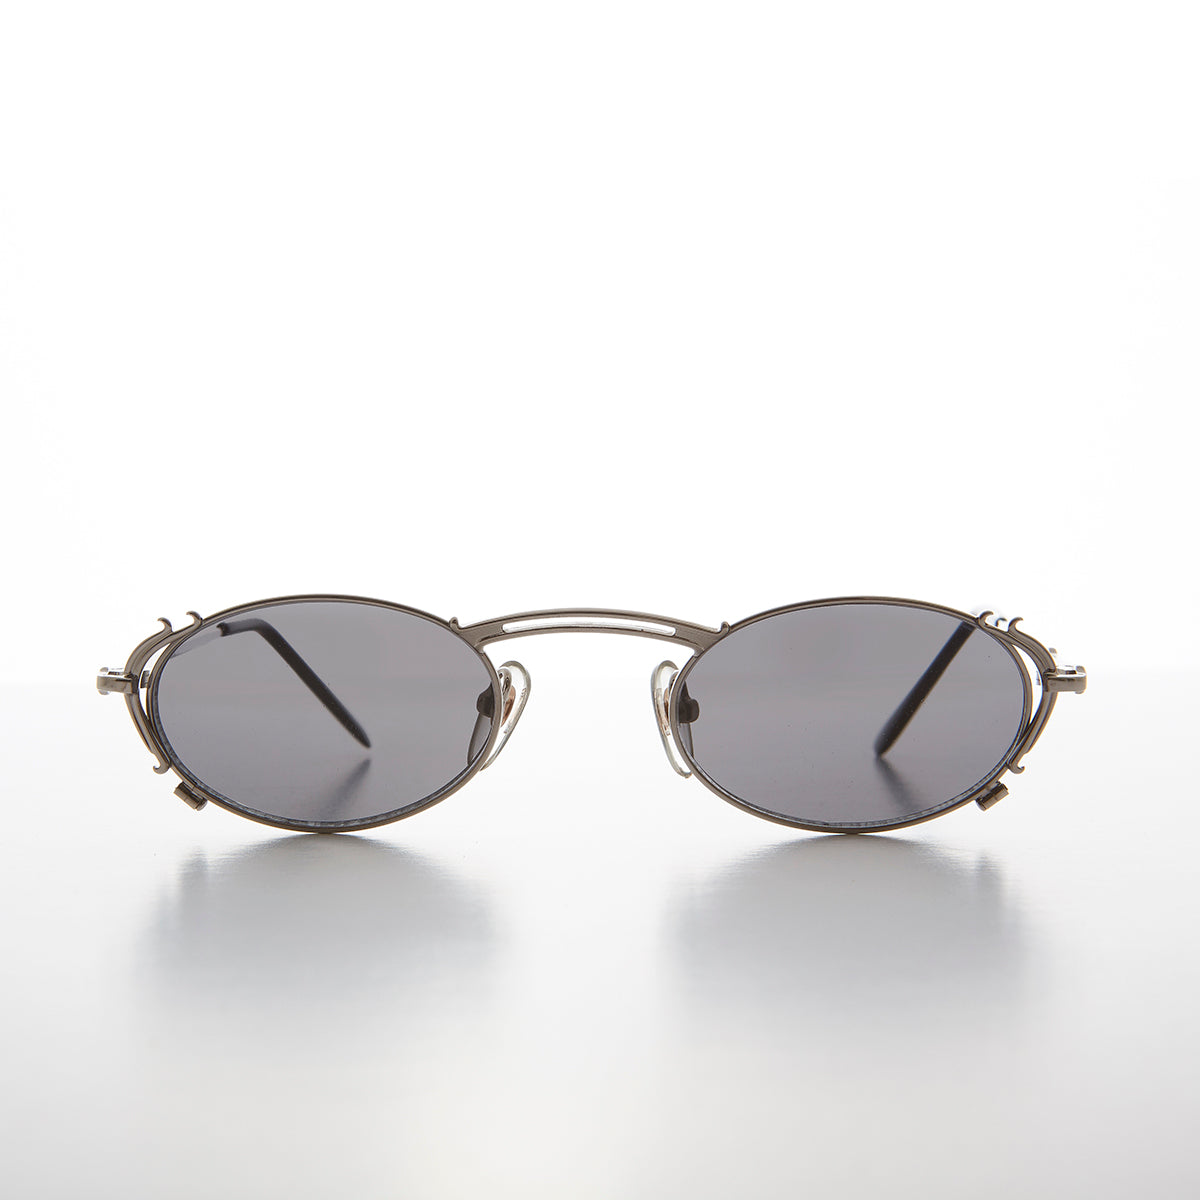 Tiny Oval Intricate Spectacles Vintage Sunglasses - Lowell